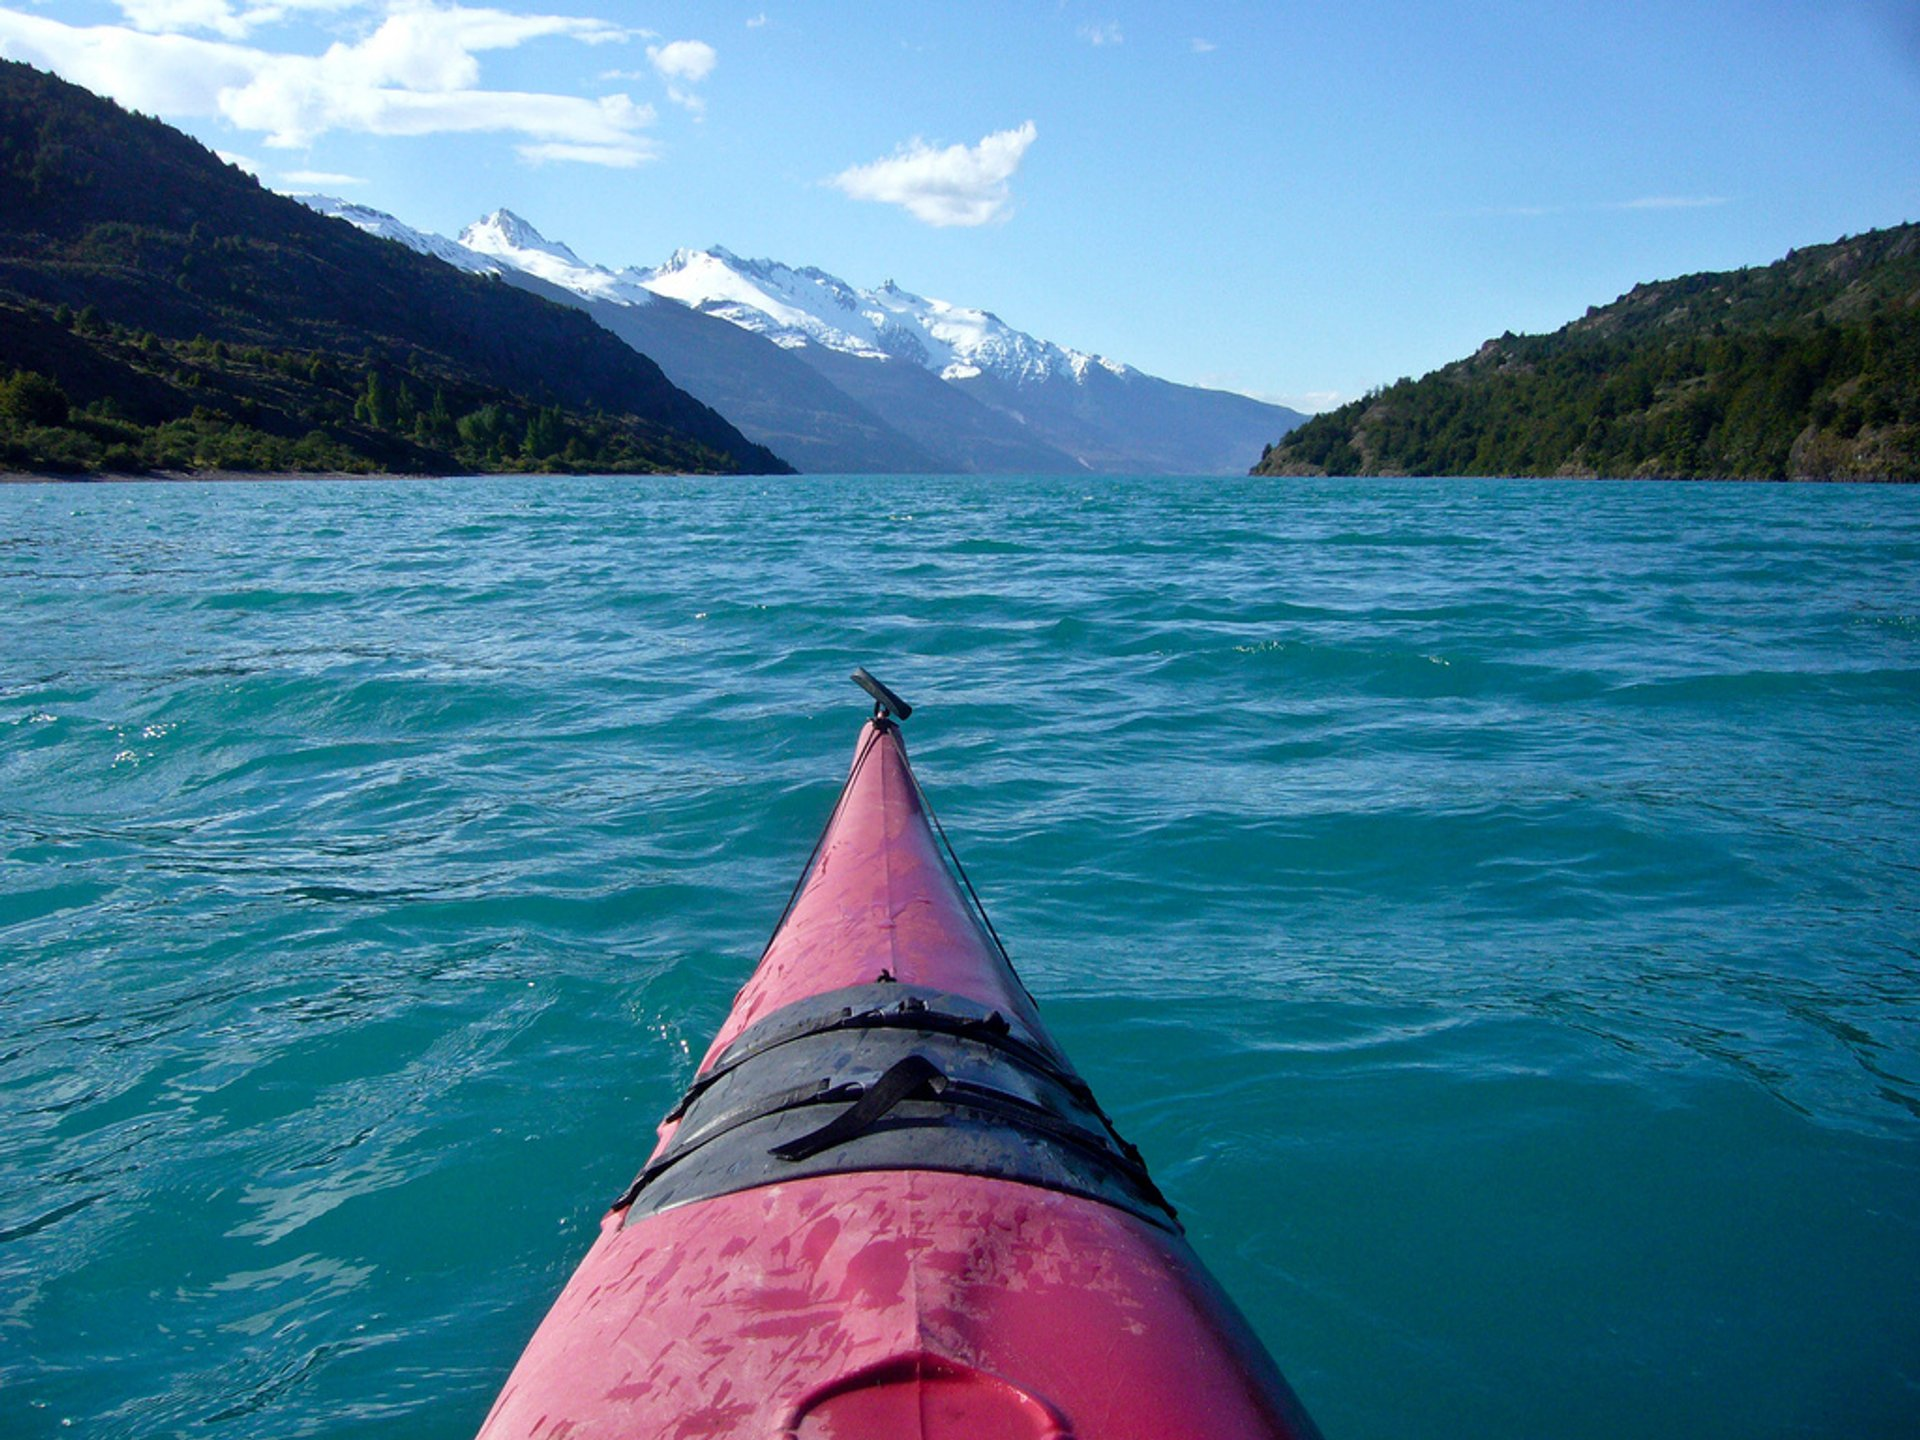 Kayaking and Canoeing in Chile 2020 - Best Time